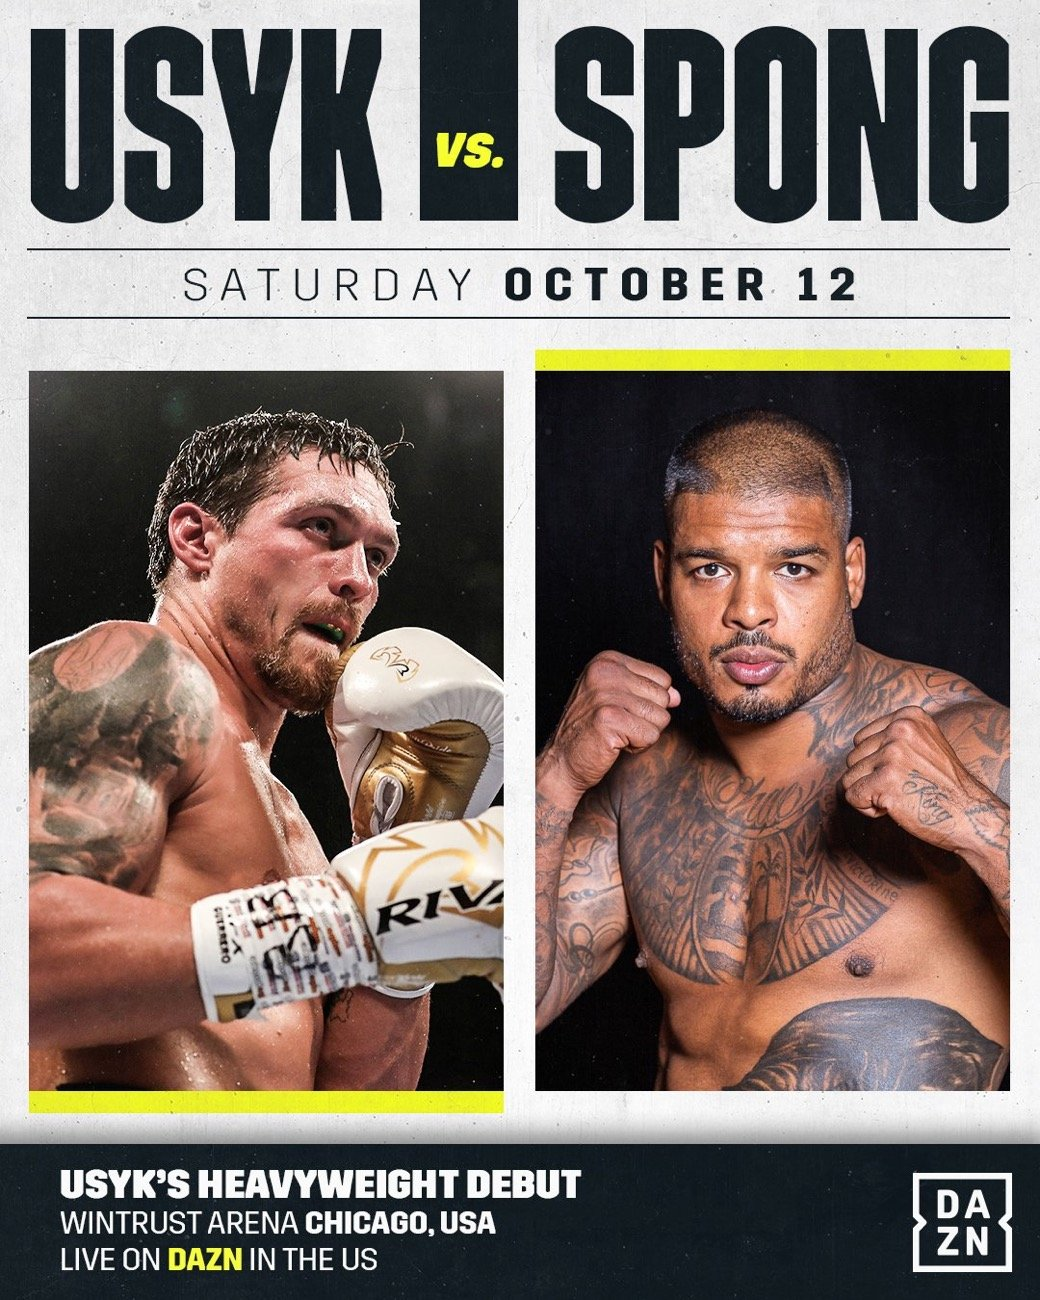 - Latest Aleksandr Usyk Usyk vs. Spong